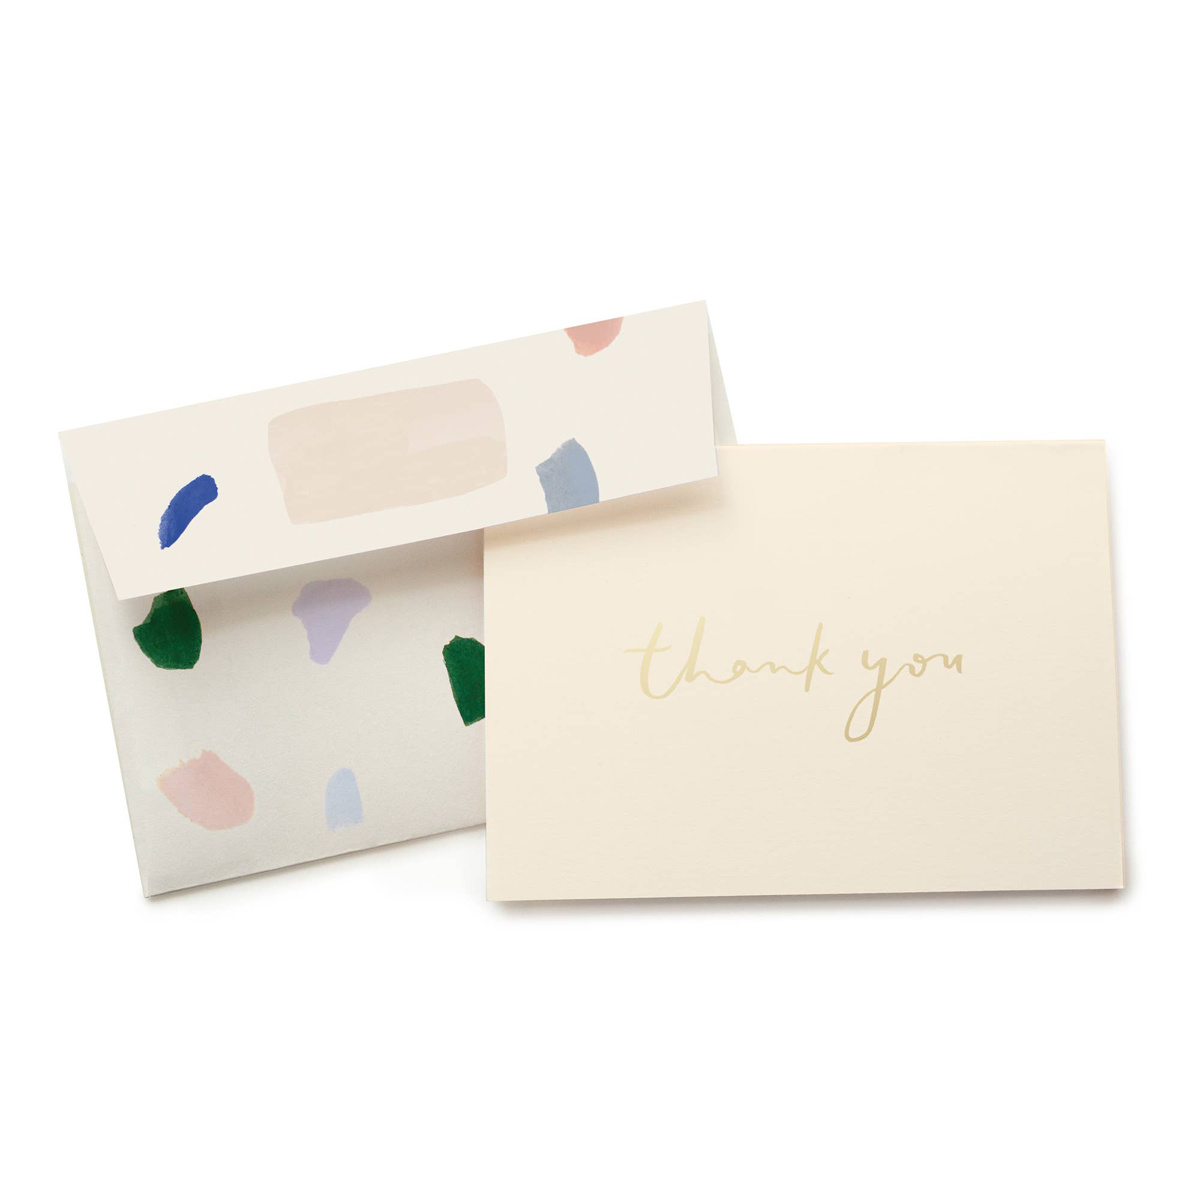 Our Heiday - OH Strokes Thank You, Set of 8